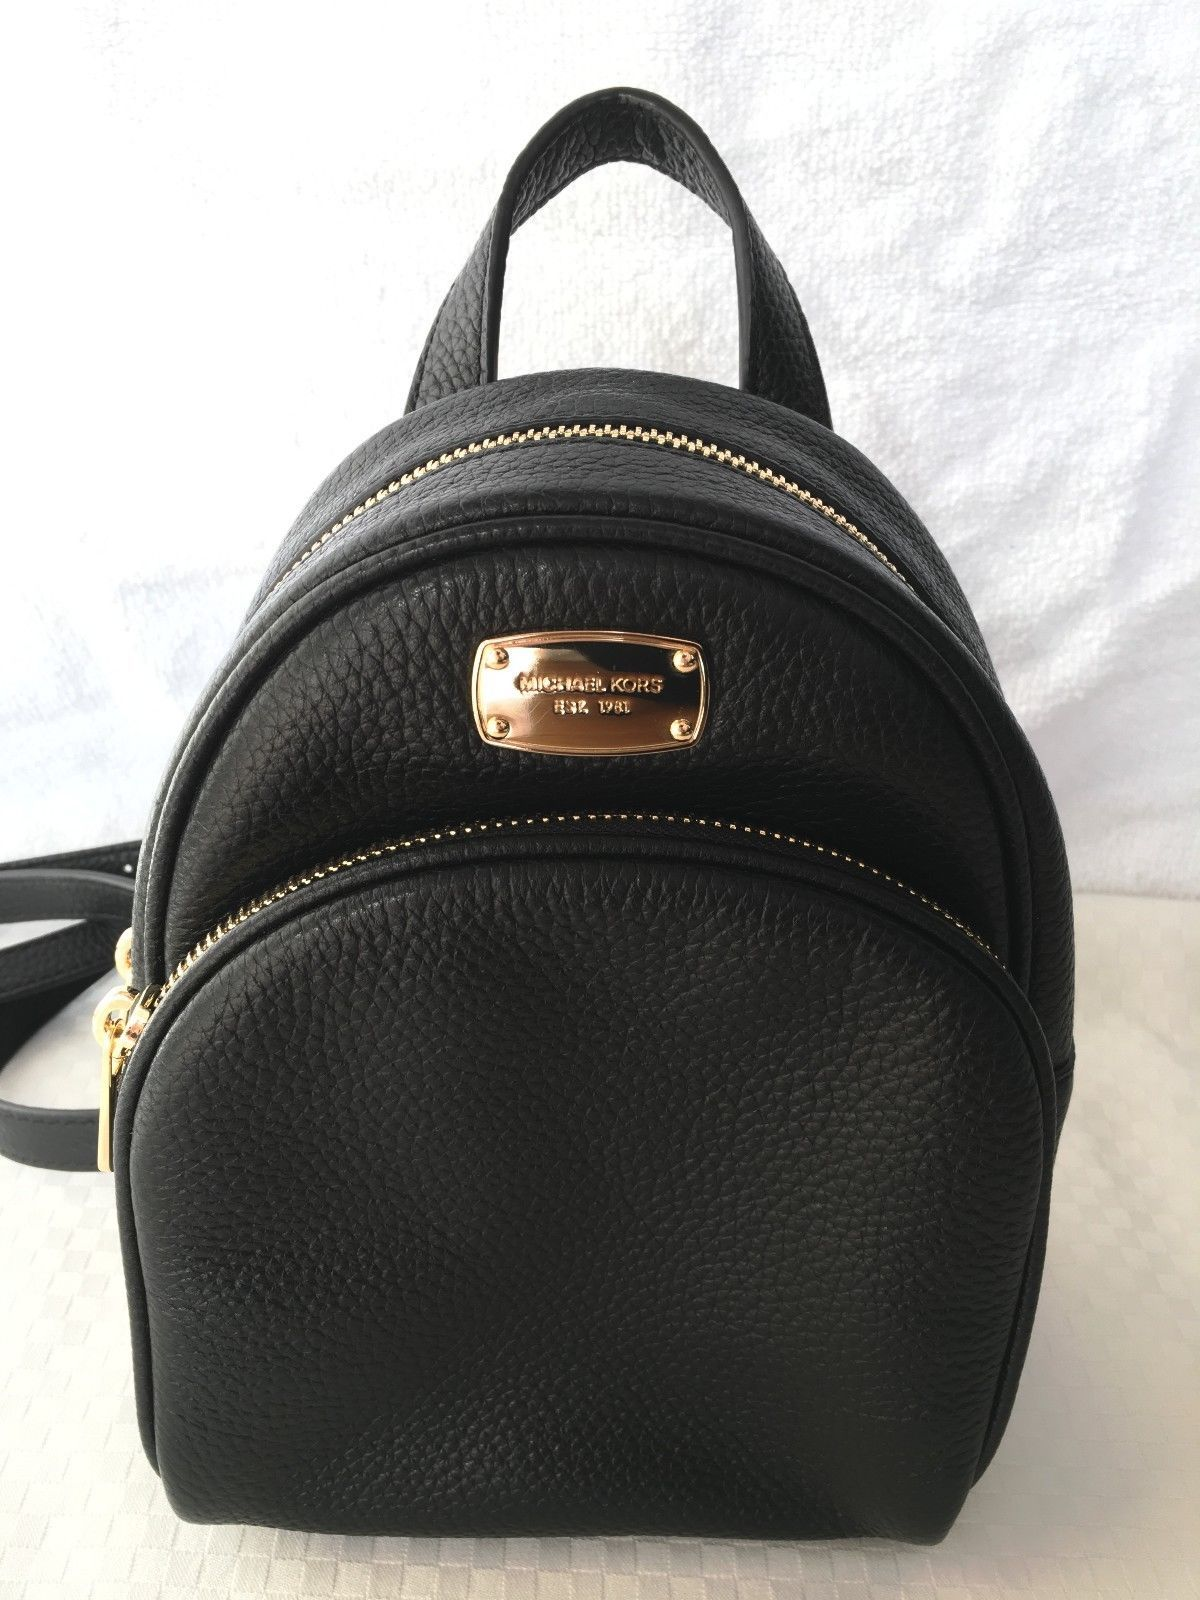 ce69f892b189 ... netherlands nwt michael kors abbey xs mini backpack black pebble  leather mk bag authentic 1811c 45aba